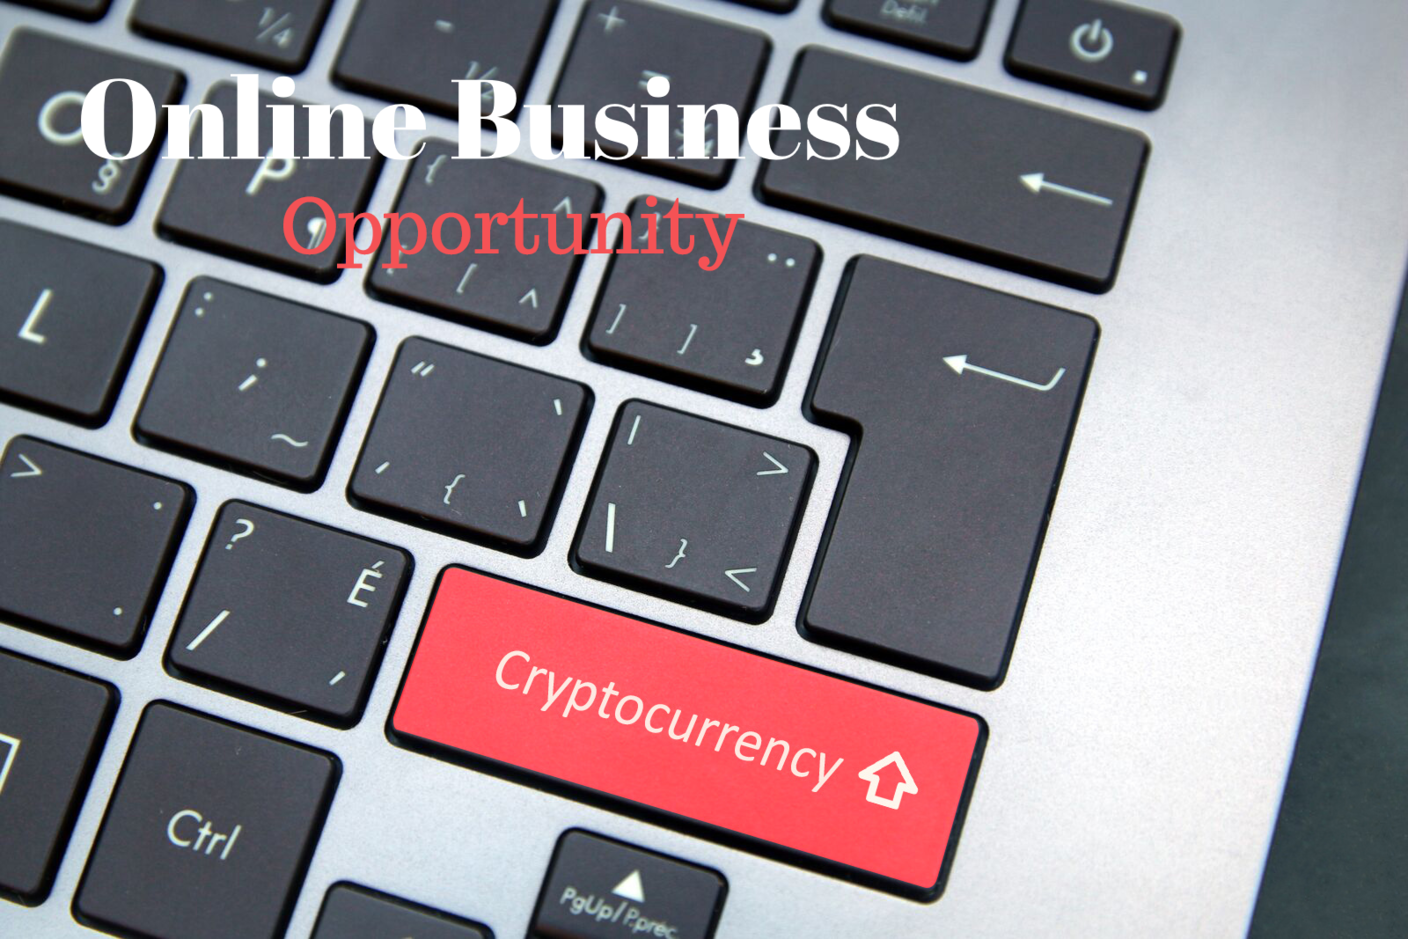 Cryptocurrency starting online business